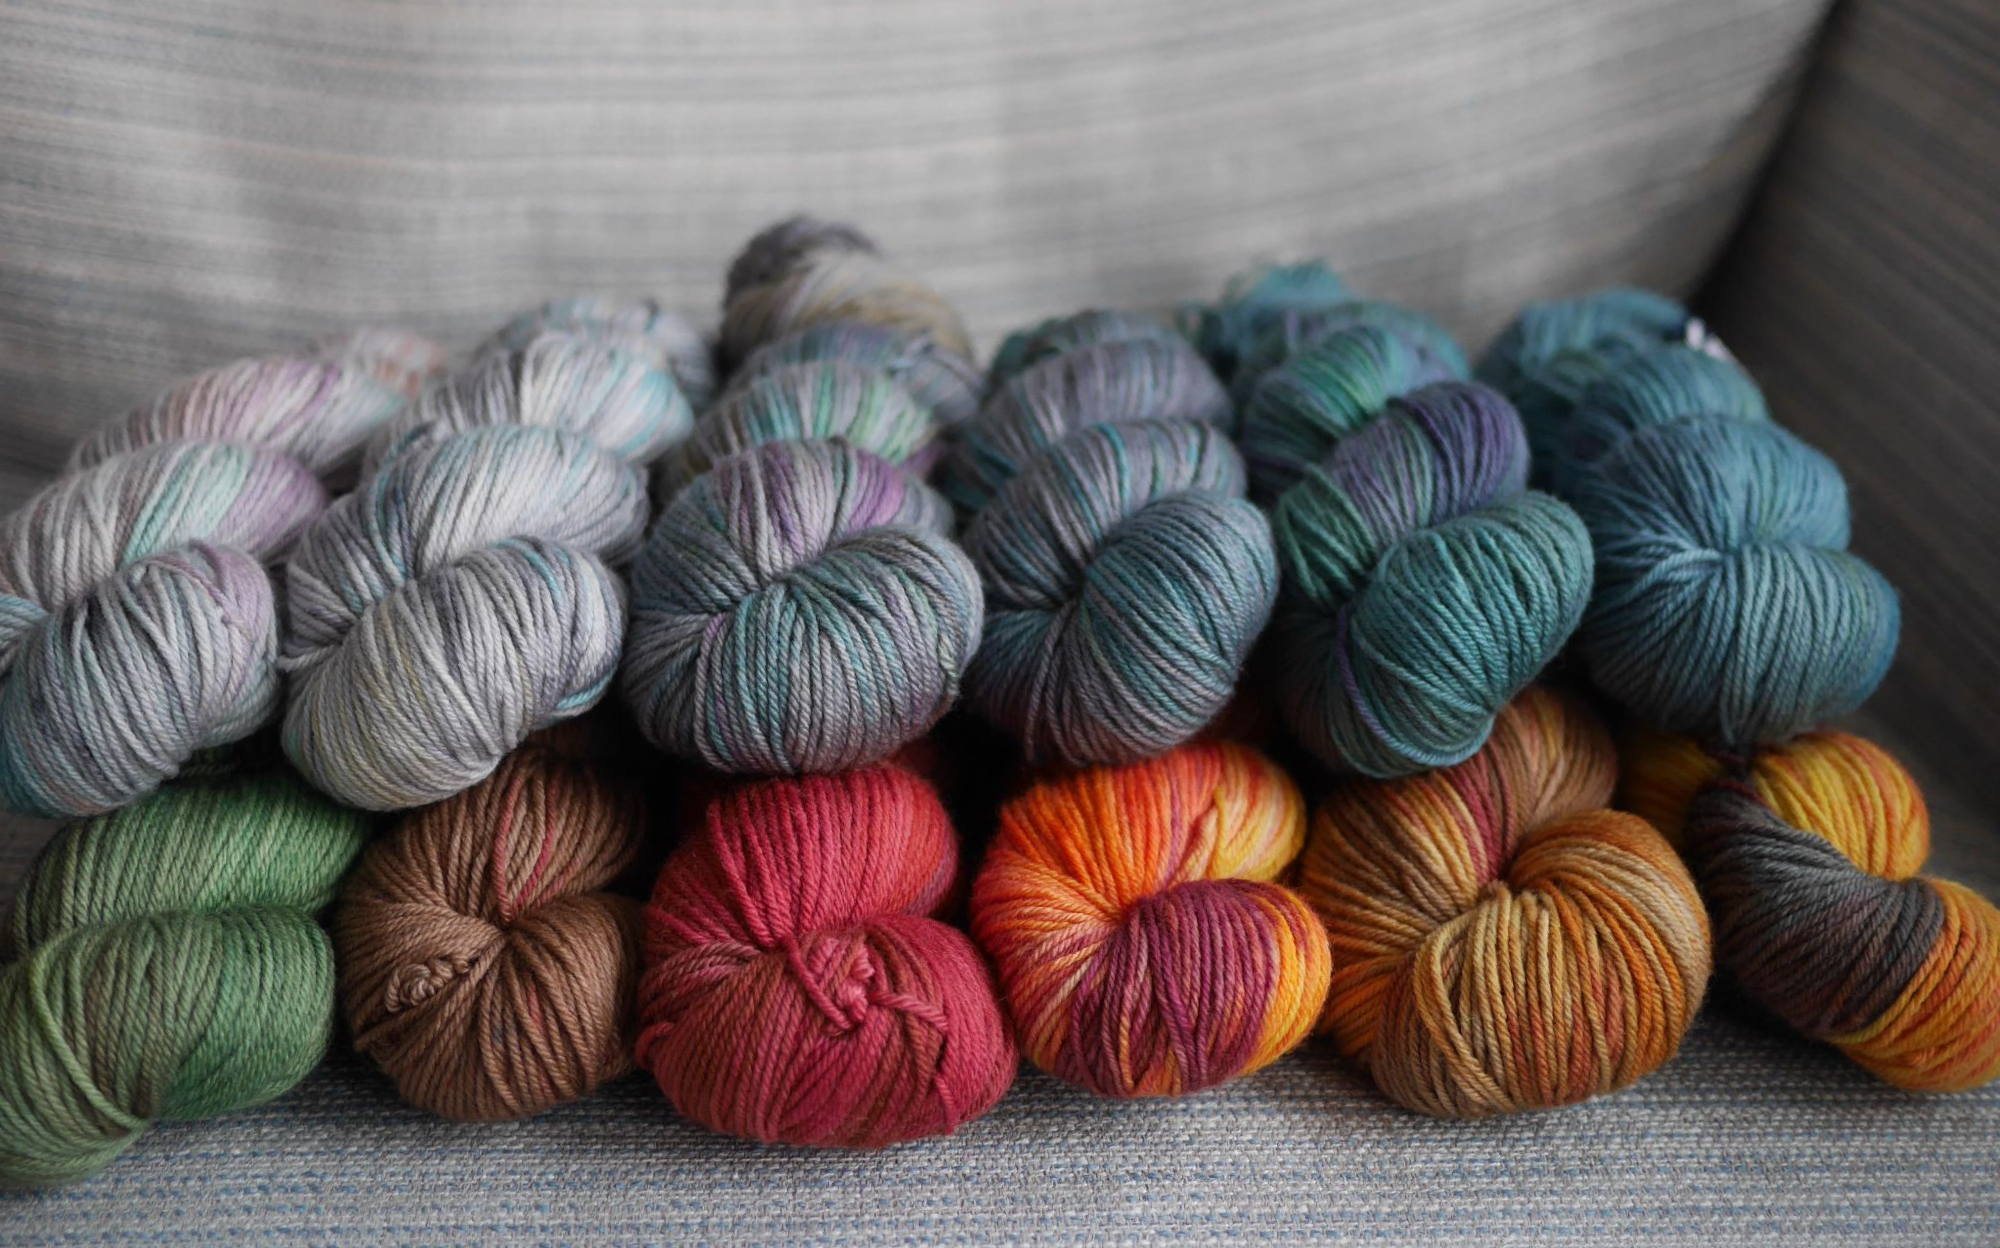 On a grey and blue striped fabric background,  12 skeins of dk weight yarn sit 2 skein high in a line. with colours ranging from silver with pastel flashes to a deep steely blue and cerulean, green and purple flashes on the top. On the bottom colours range from greens and browns to bright orangey reds with a shot of black.